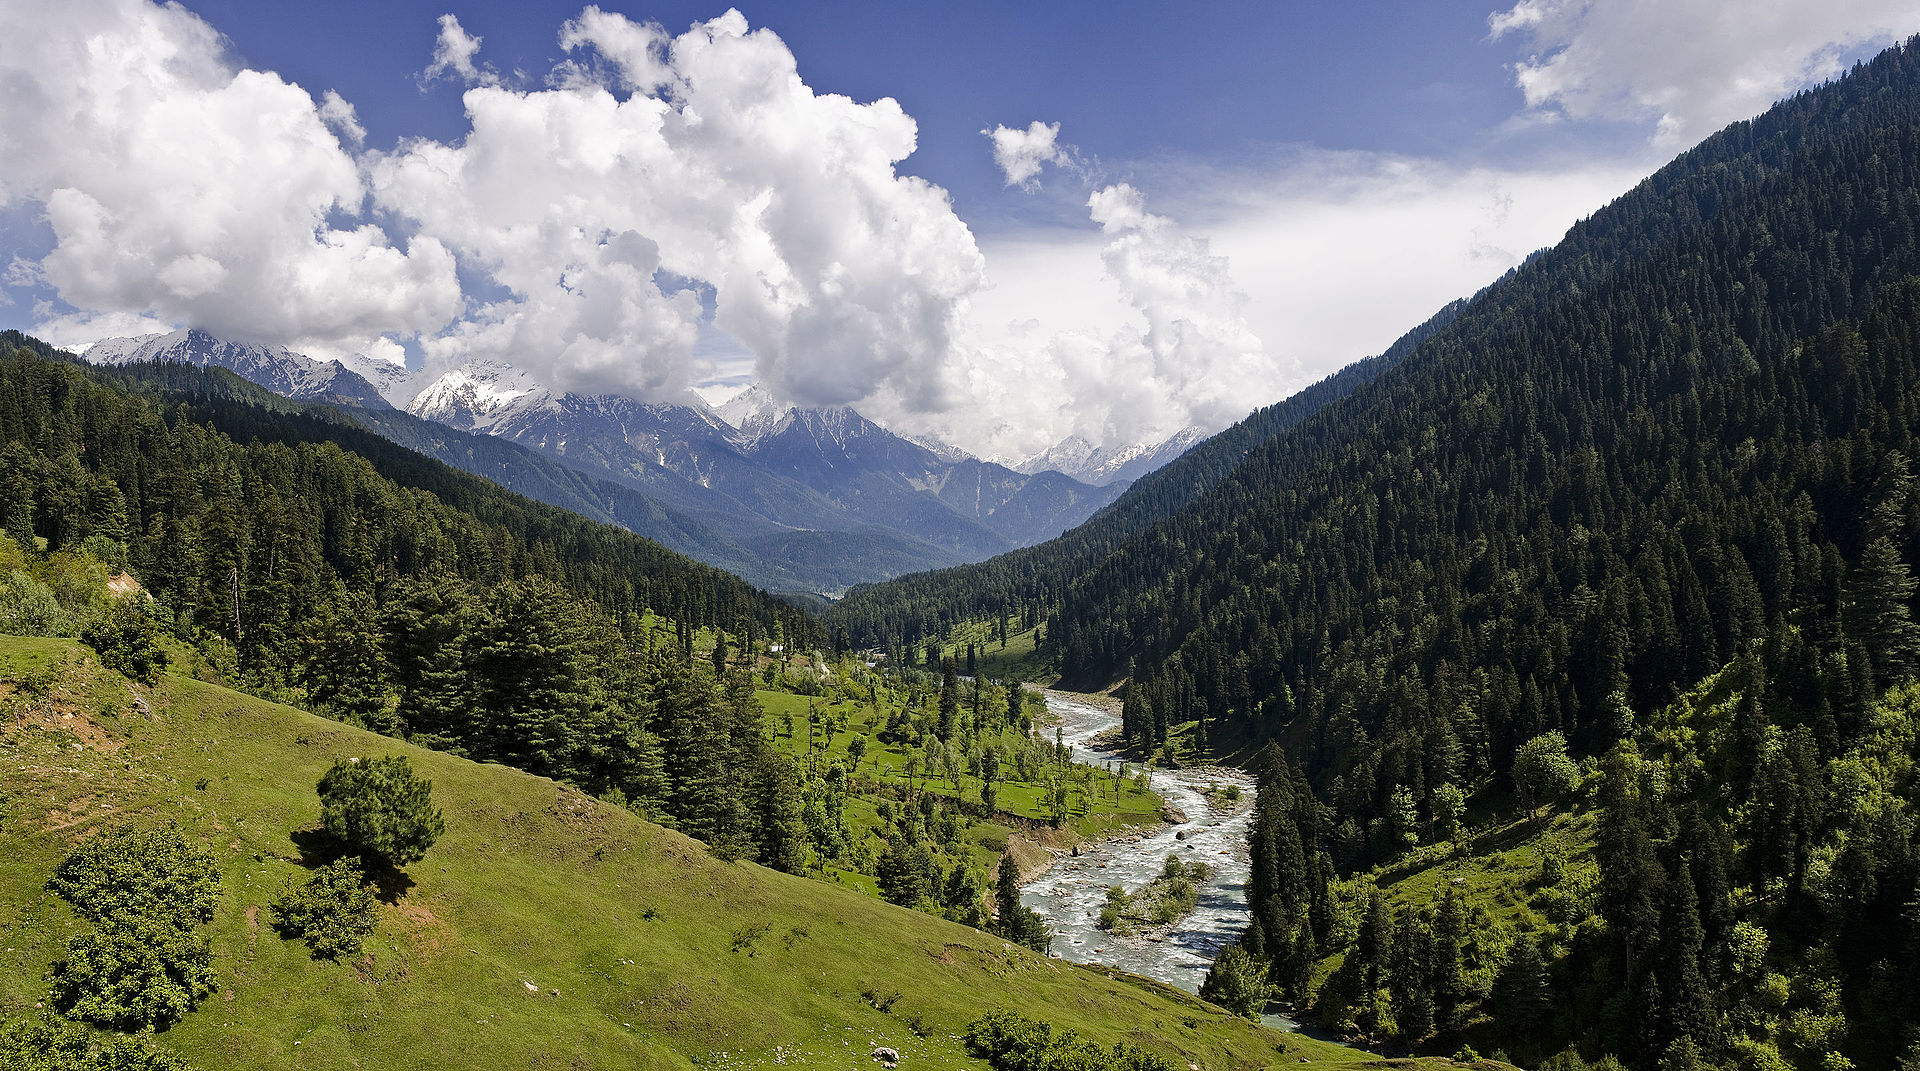 A view of Pahalgam Valley, Kashmir, a tourist destination nearby the popular Hindu pilgrimage to Amarnath caves. Creative Commons photo.